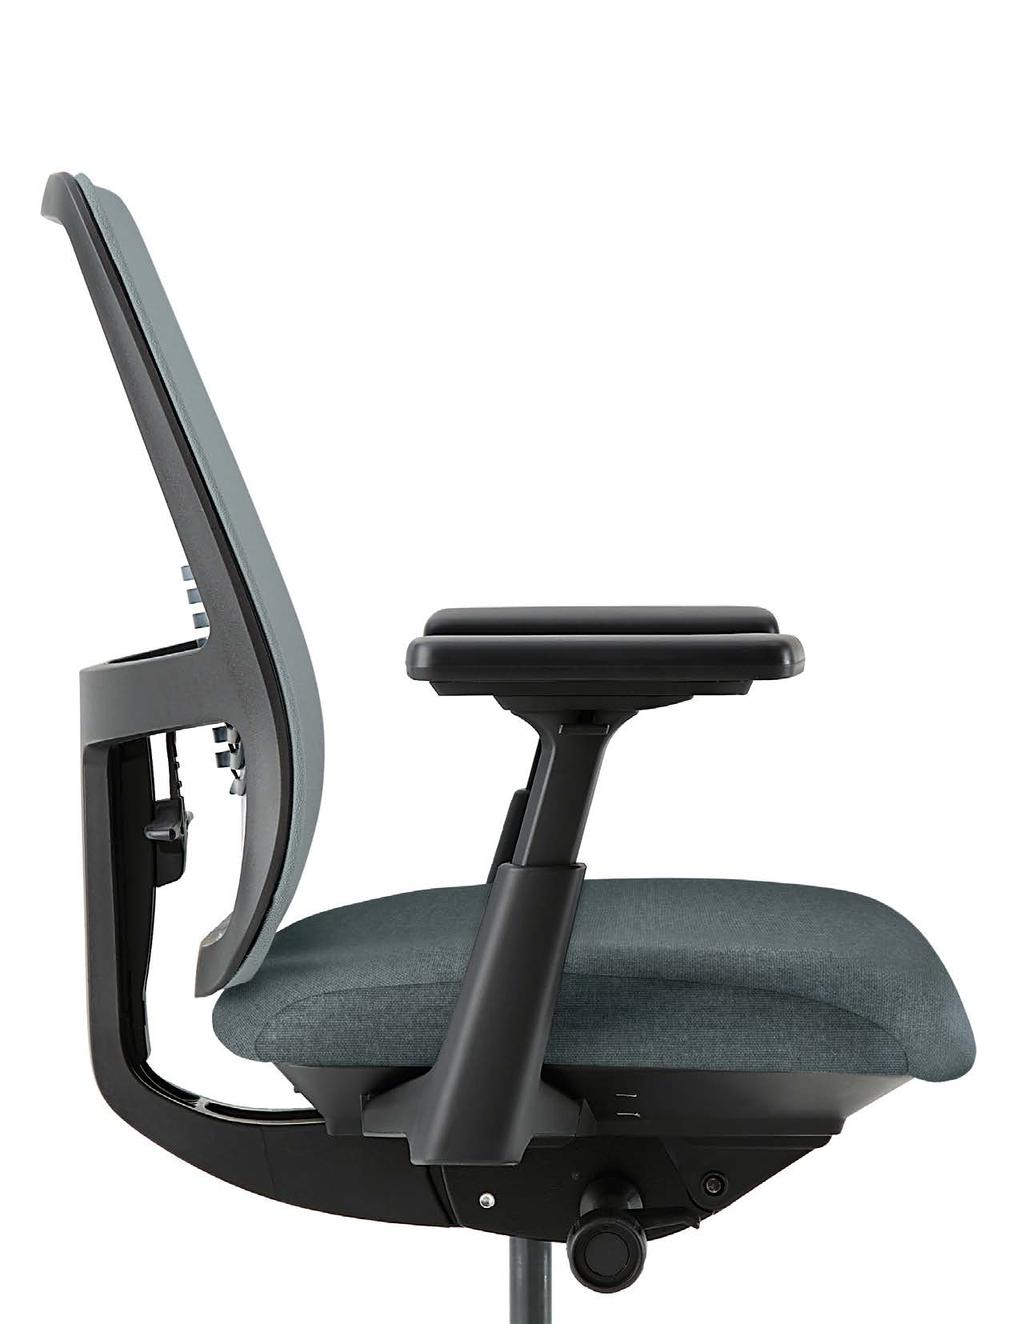 DAY-LONG COMFORT With Lively, you benefit from Haworth s industry-leading research in ergonomics and human performance.